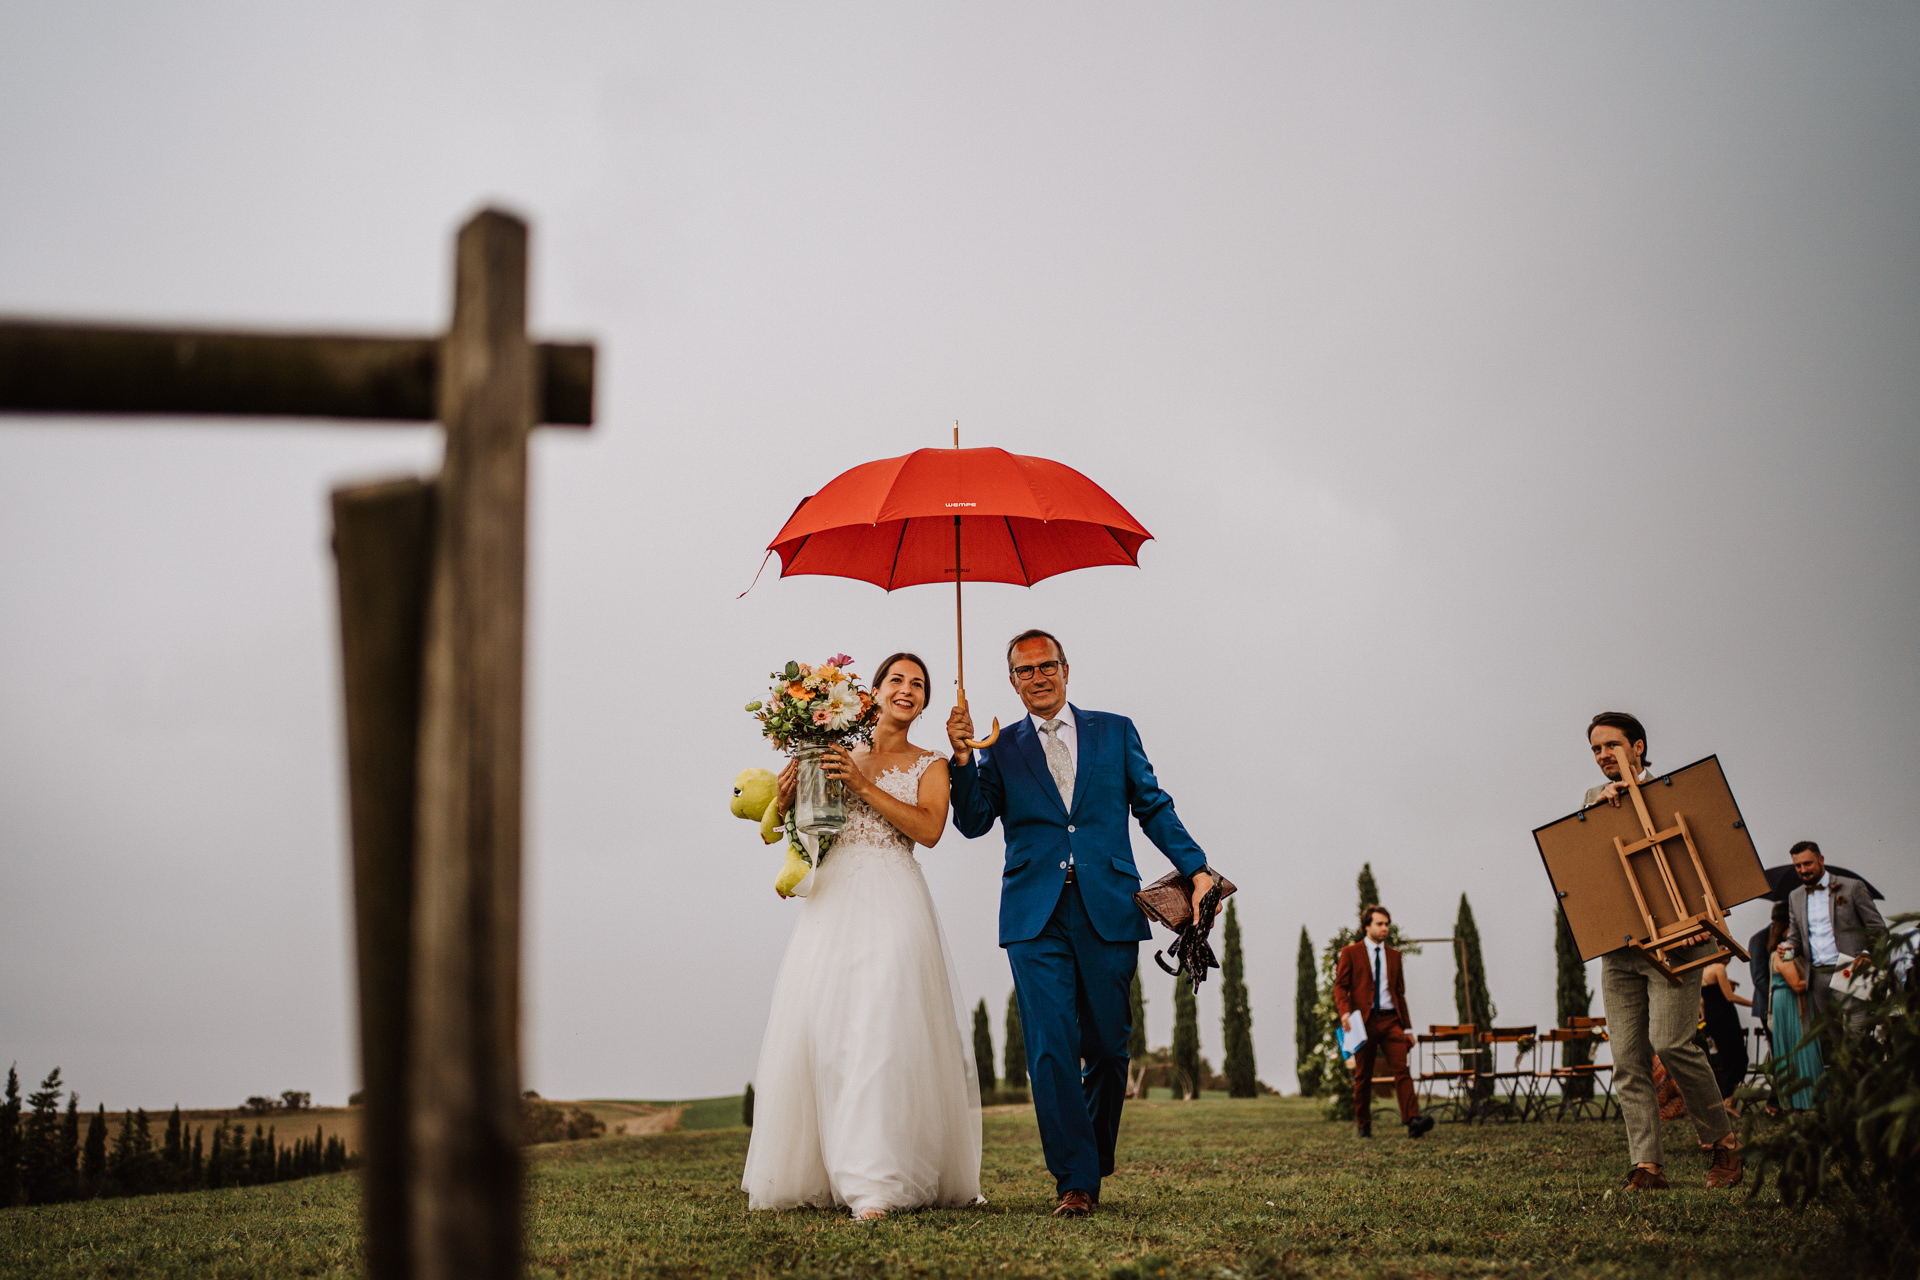 Countryside Elopement Picture - The Rain in at Agriturismo Il Rigo   A rain storm forces the guests to run inside to finish the ceremony